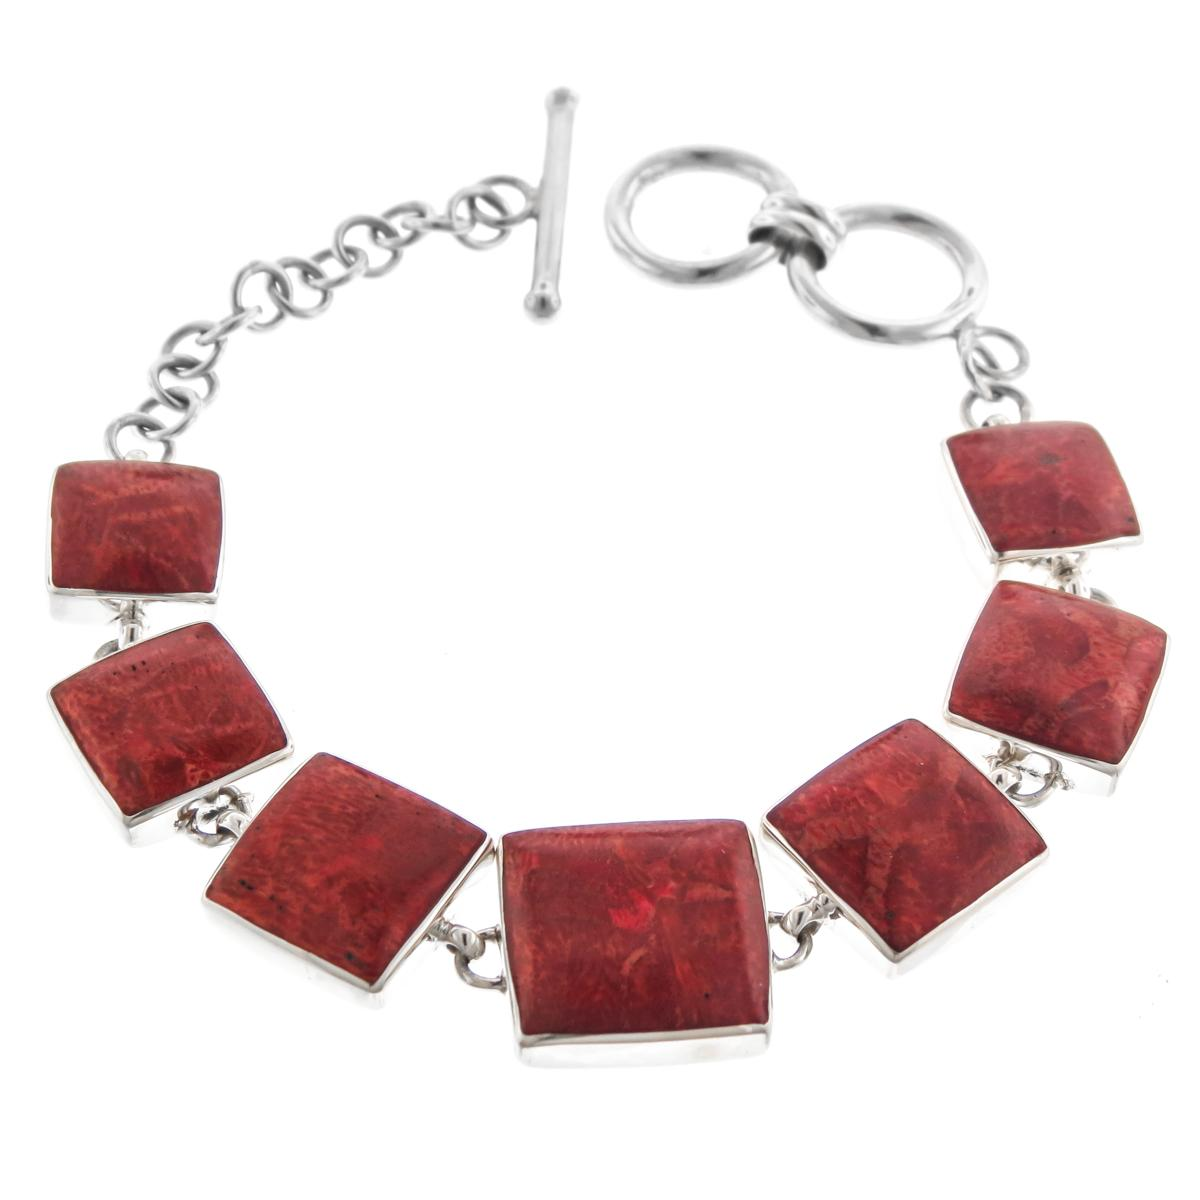 """Red Sponge Coral 925 Sterling Silver Toggle Bracelet, 6 3 4"""" 7 1 2"""" by Firoma"""